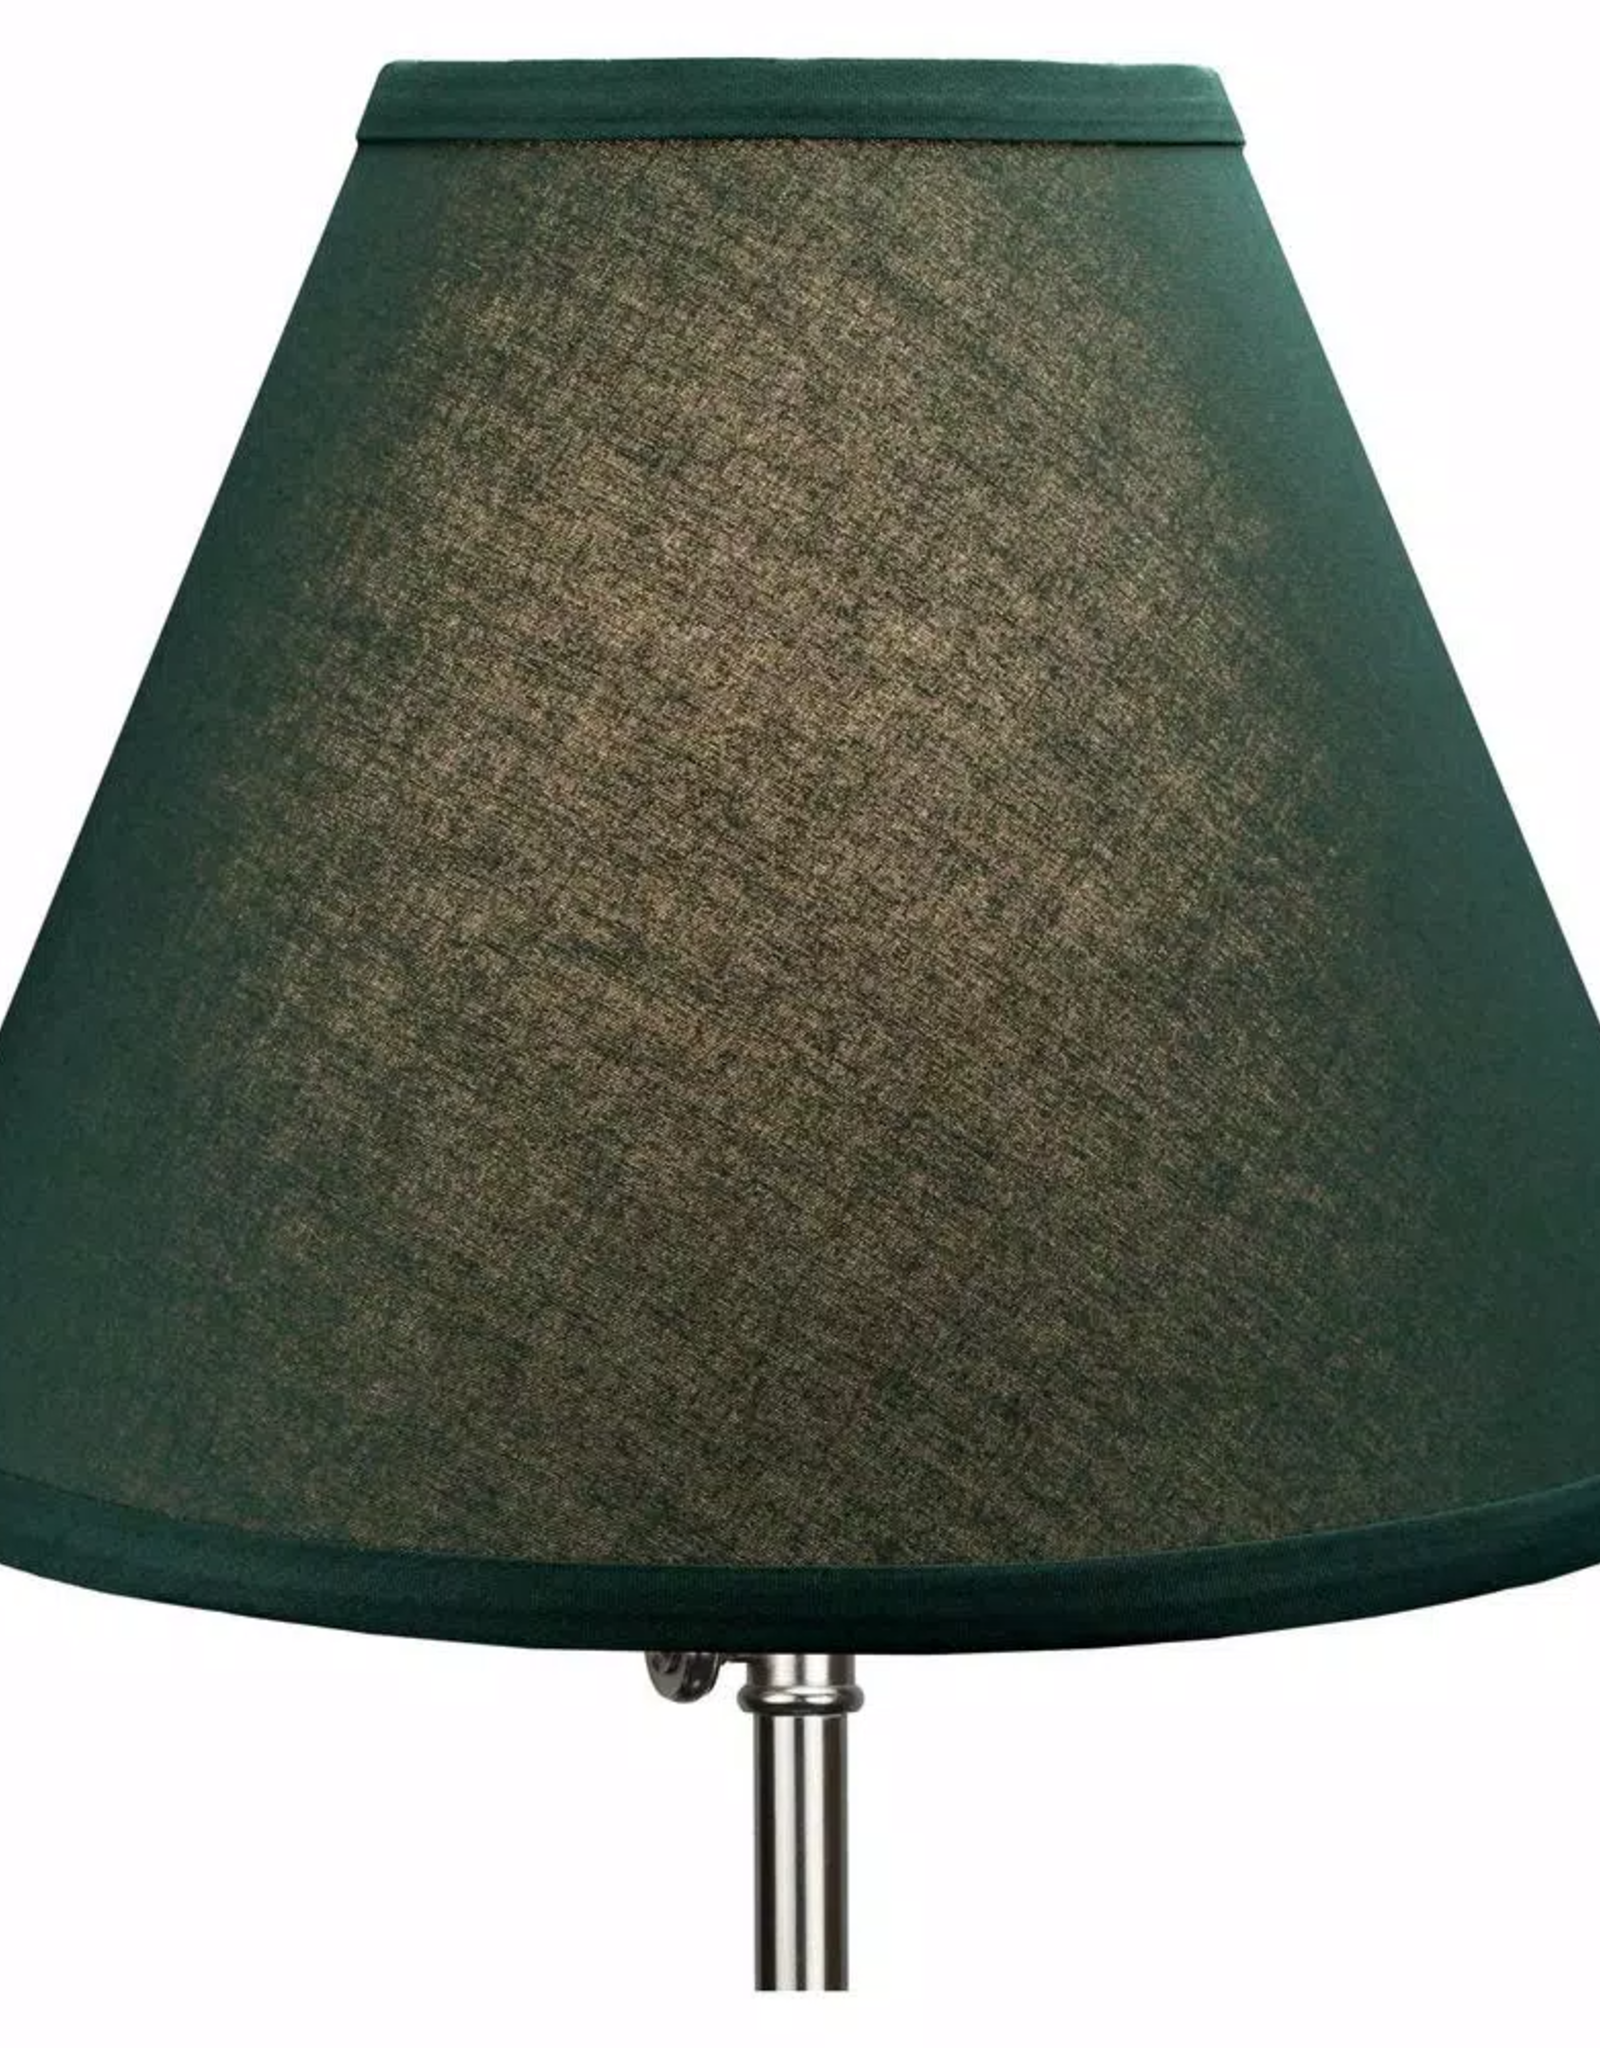 FenchelShades Fenchel Shades 12 in. Width x 8.25 in. Height Hunter Green/Nickel Finish Empire Lamp Shade